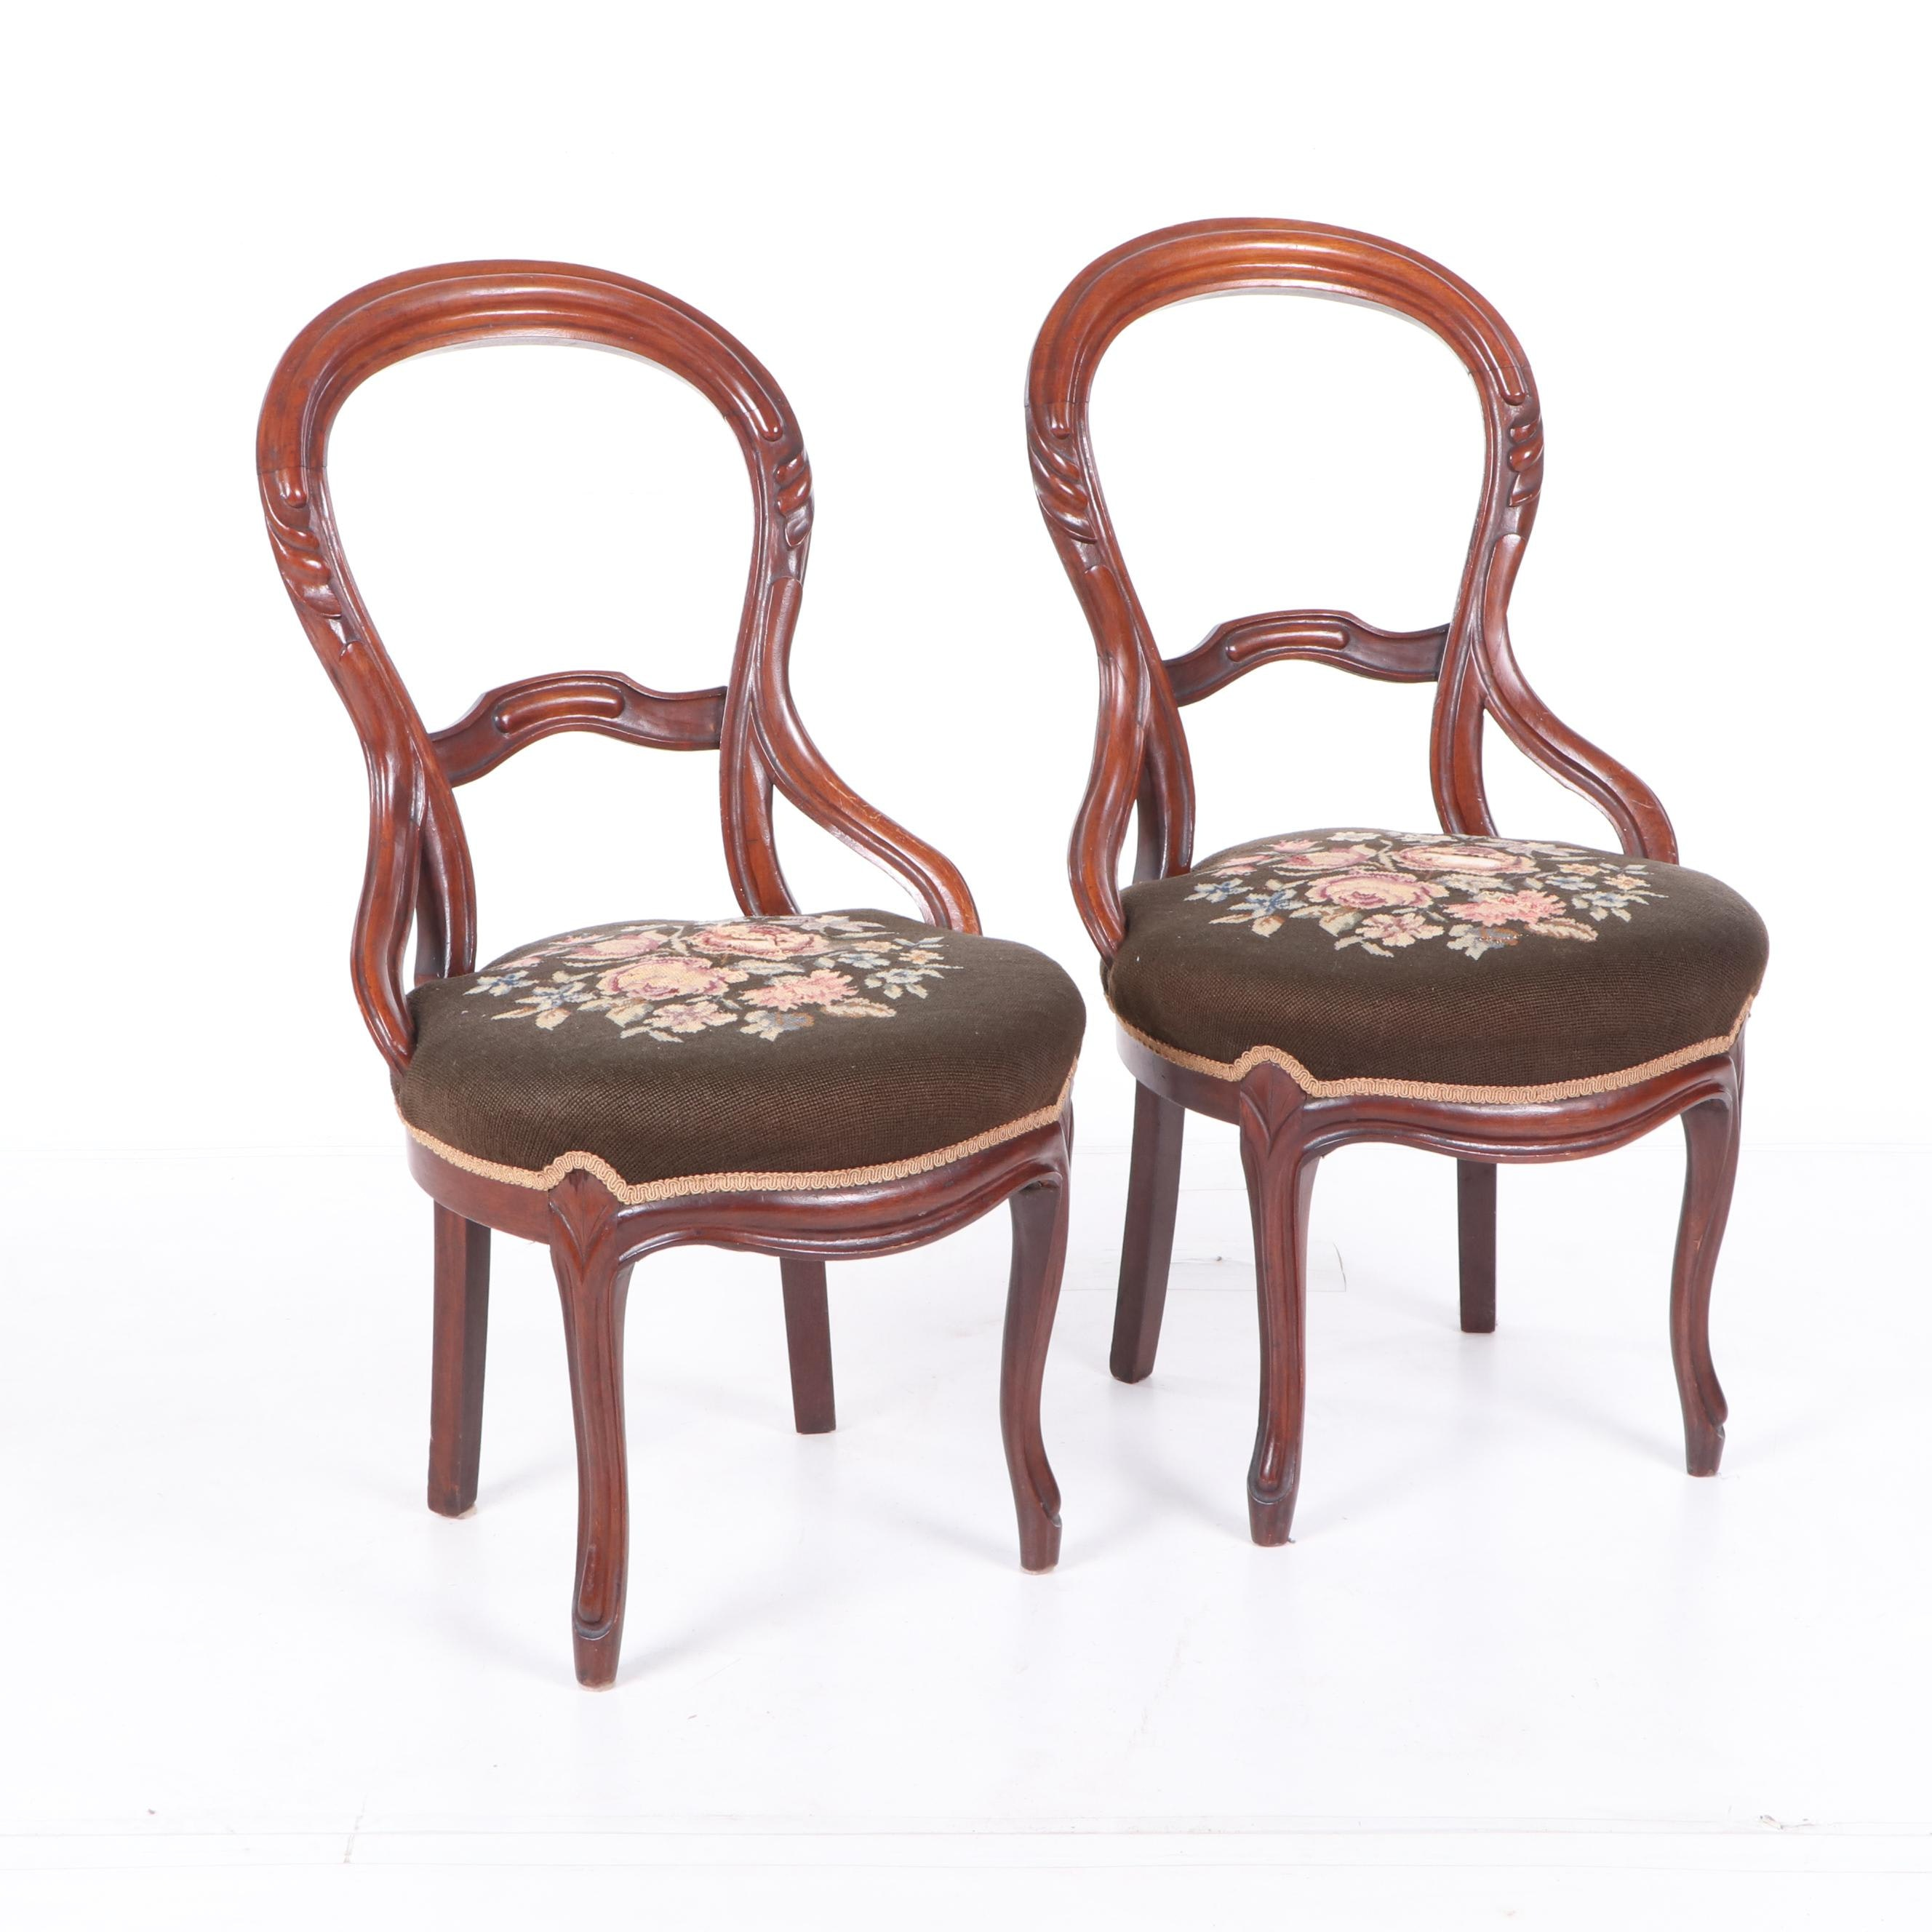 Victorian Mahogany Needlepoint Parlor Chairs, Late 19th Century